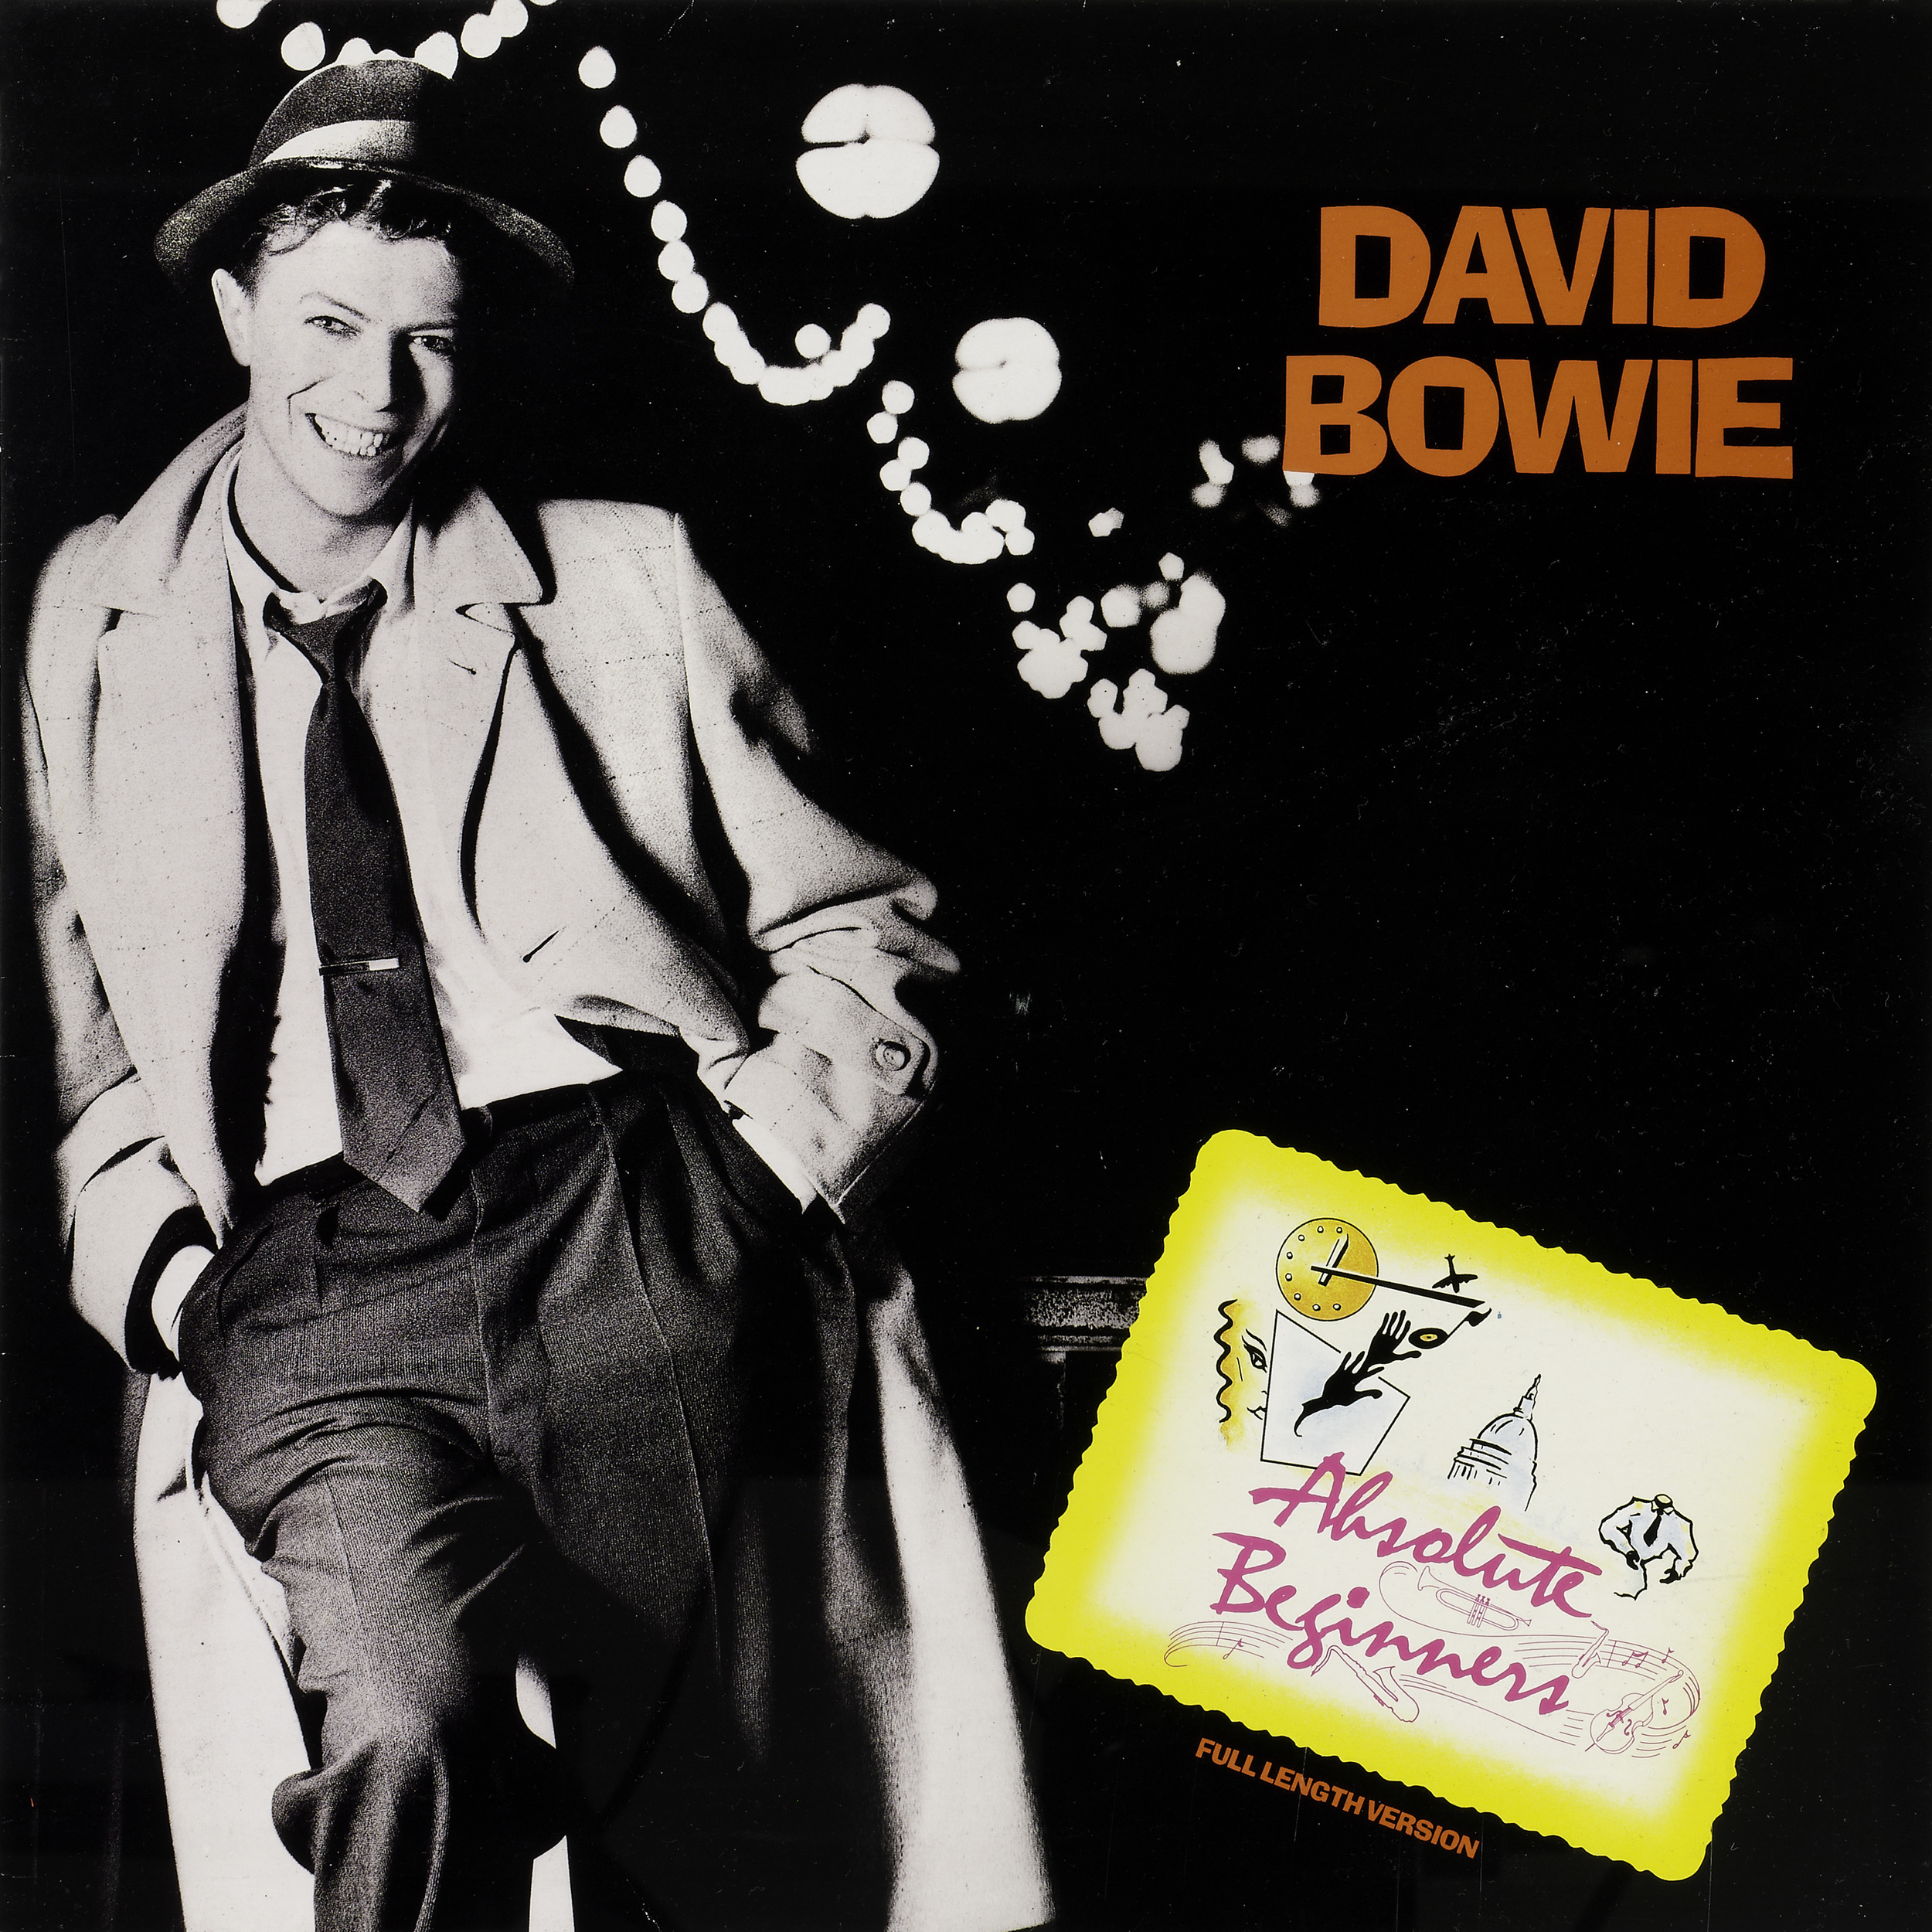 Bowie Absolute Beginners 0001.jpg